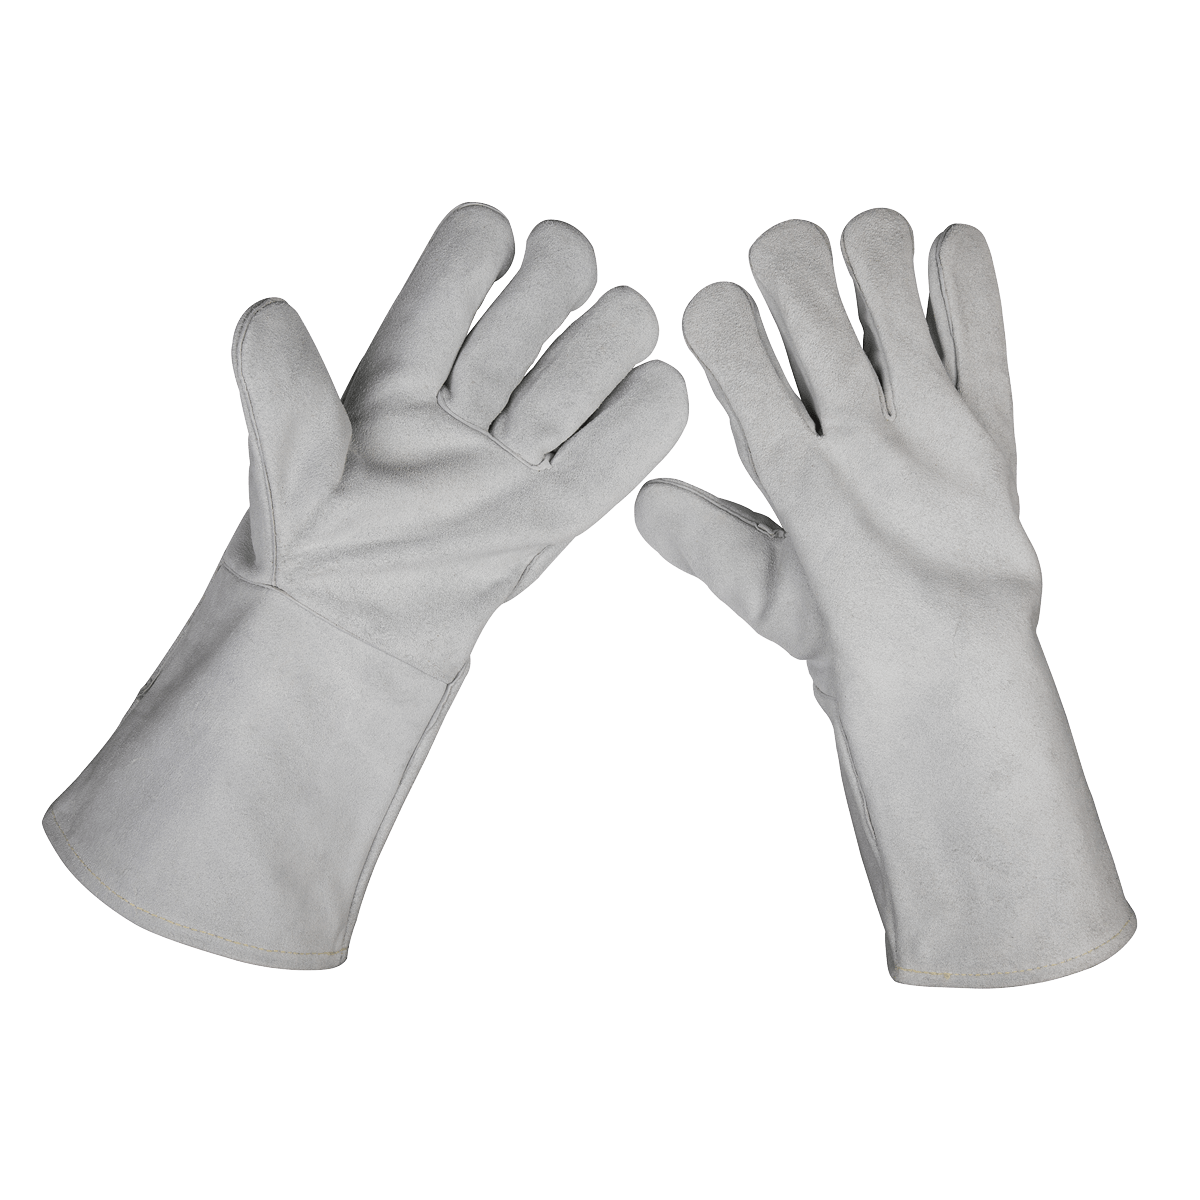 Sealey Leather Welding Gauntlets Lined Heavy-Duty Extra-Large - Pair SSP151   Heavy-duty traditionally designed extra-large welding gauntlets providing excellent protection against spatter and heat.   toolforce.ie